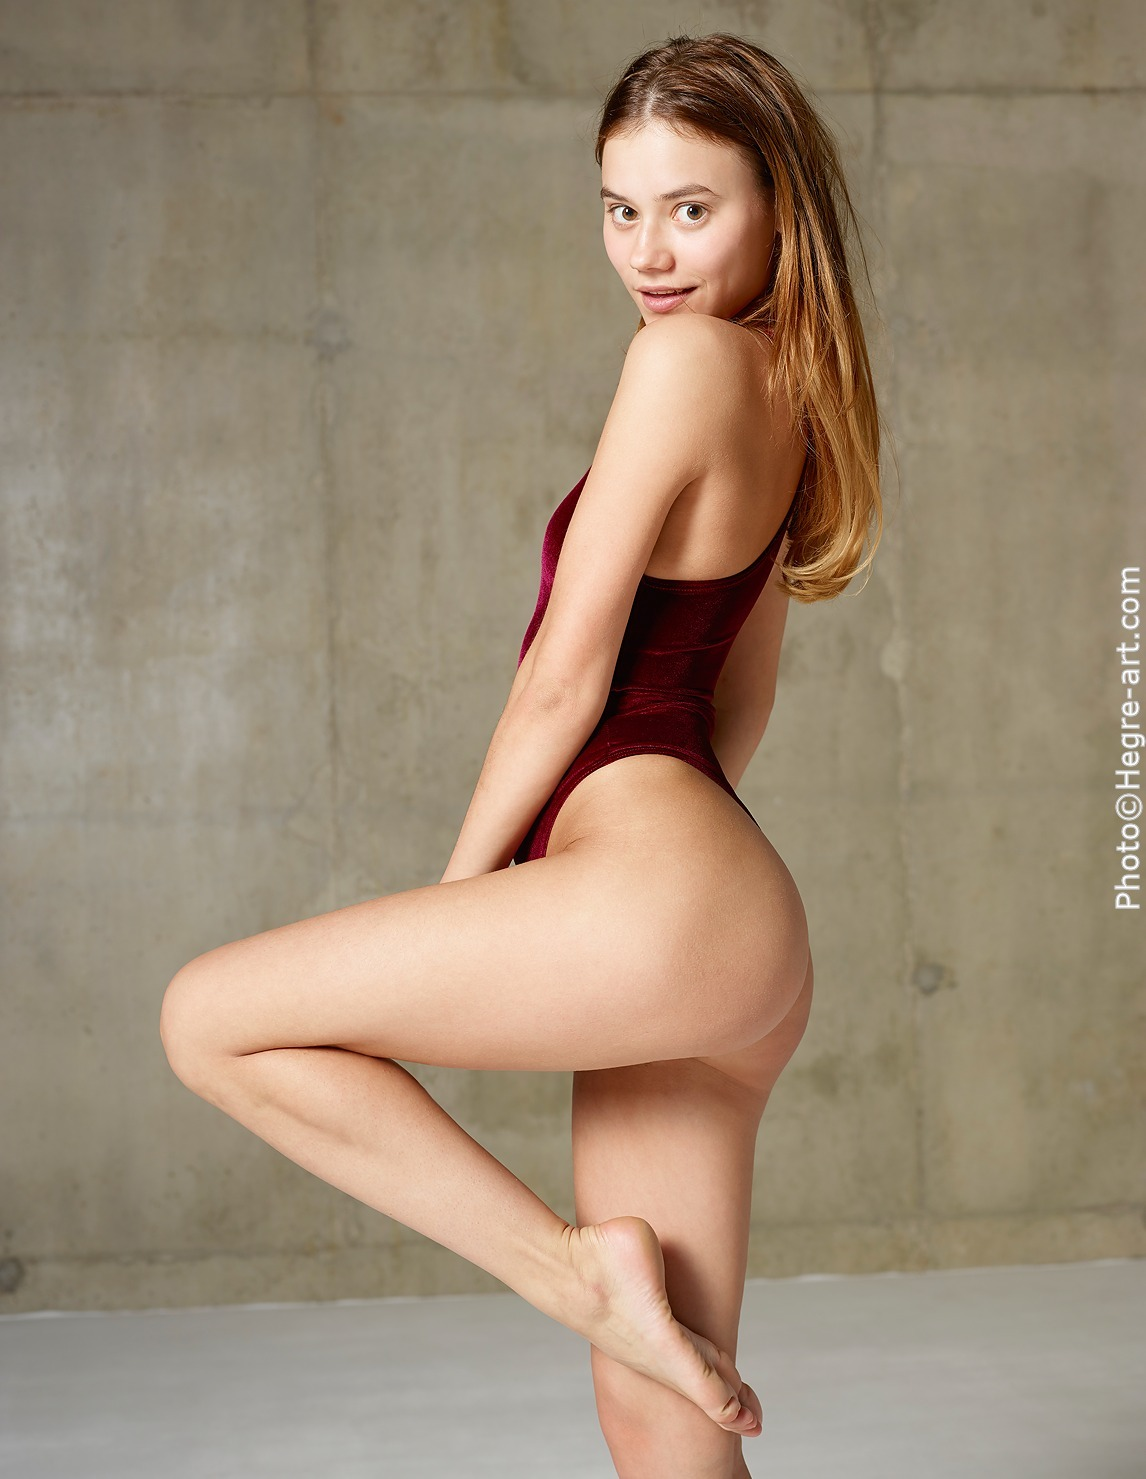 Young nude art model thong